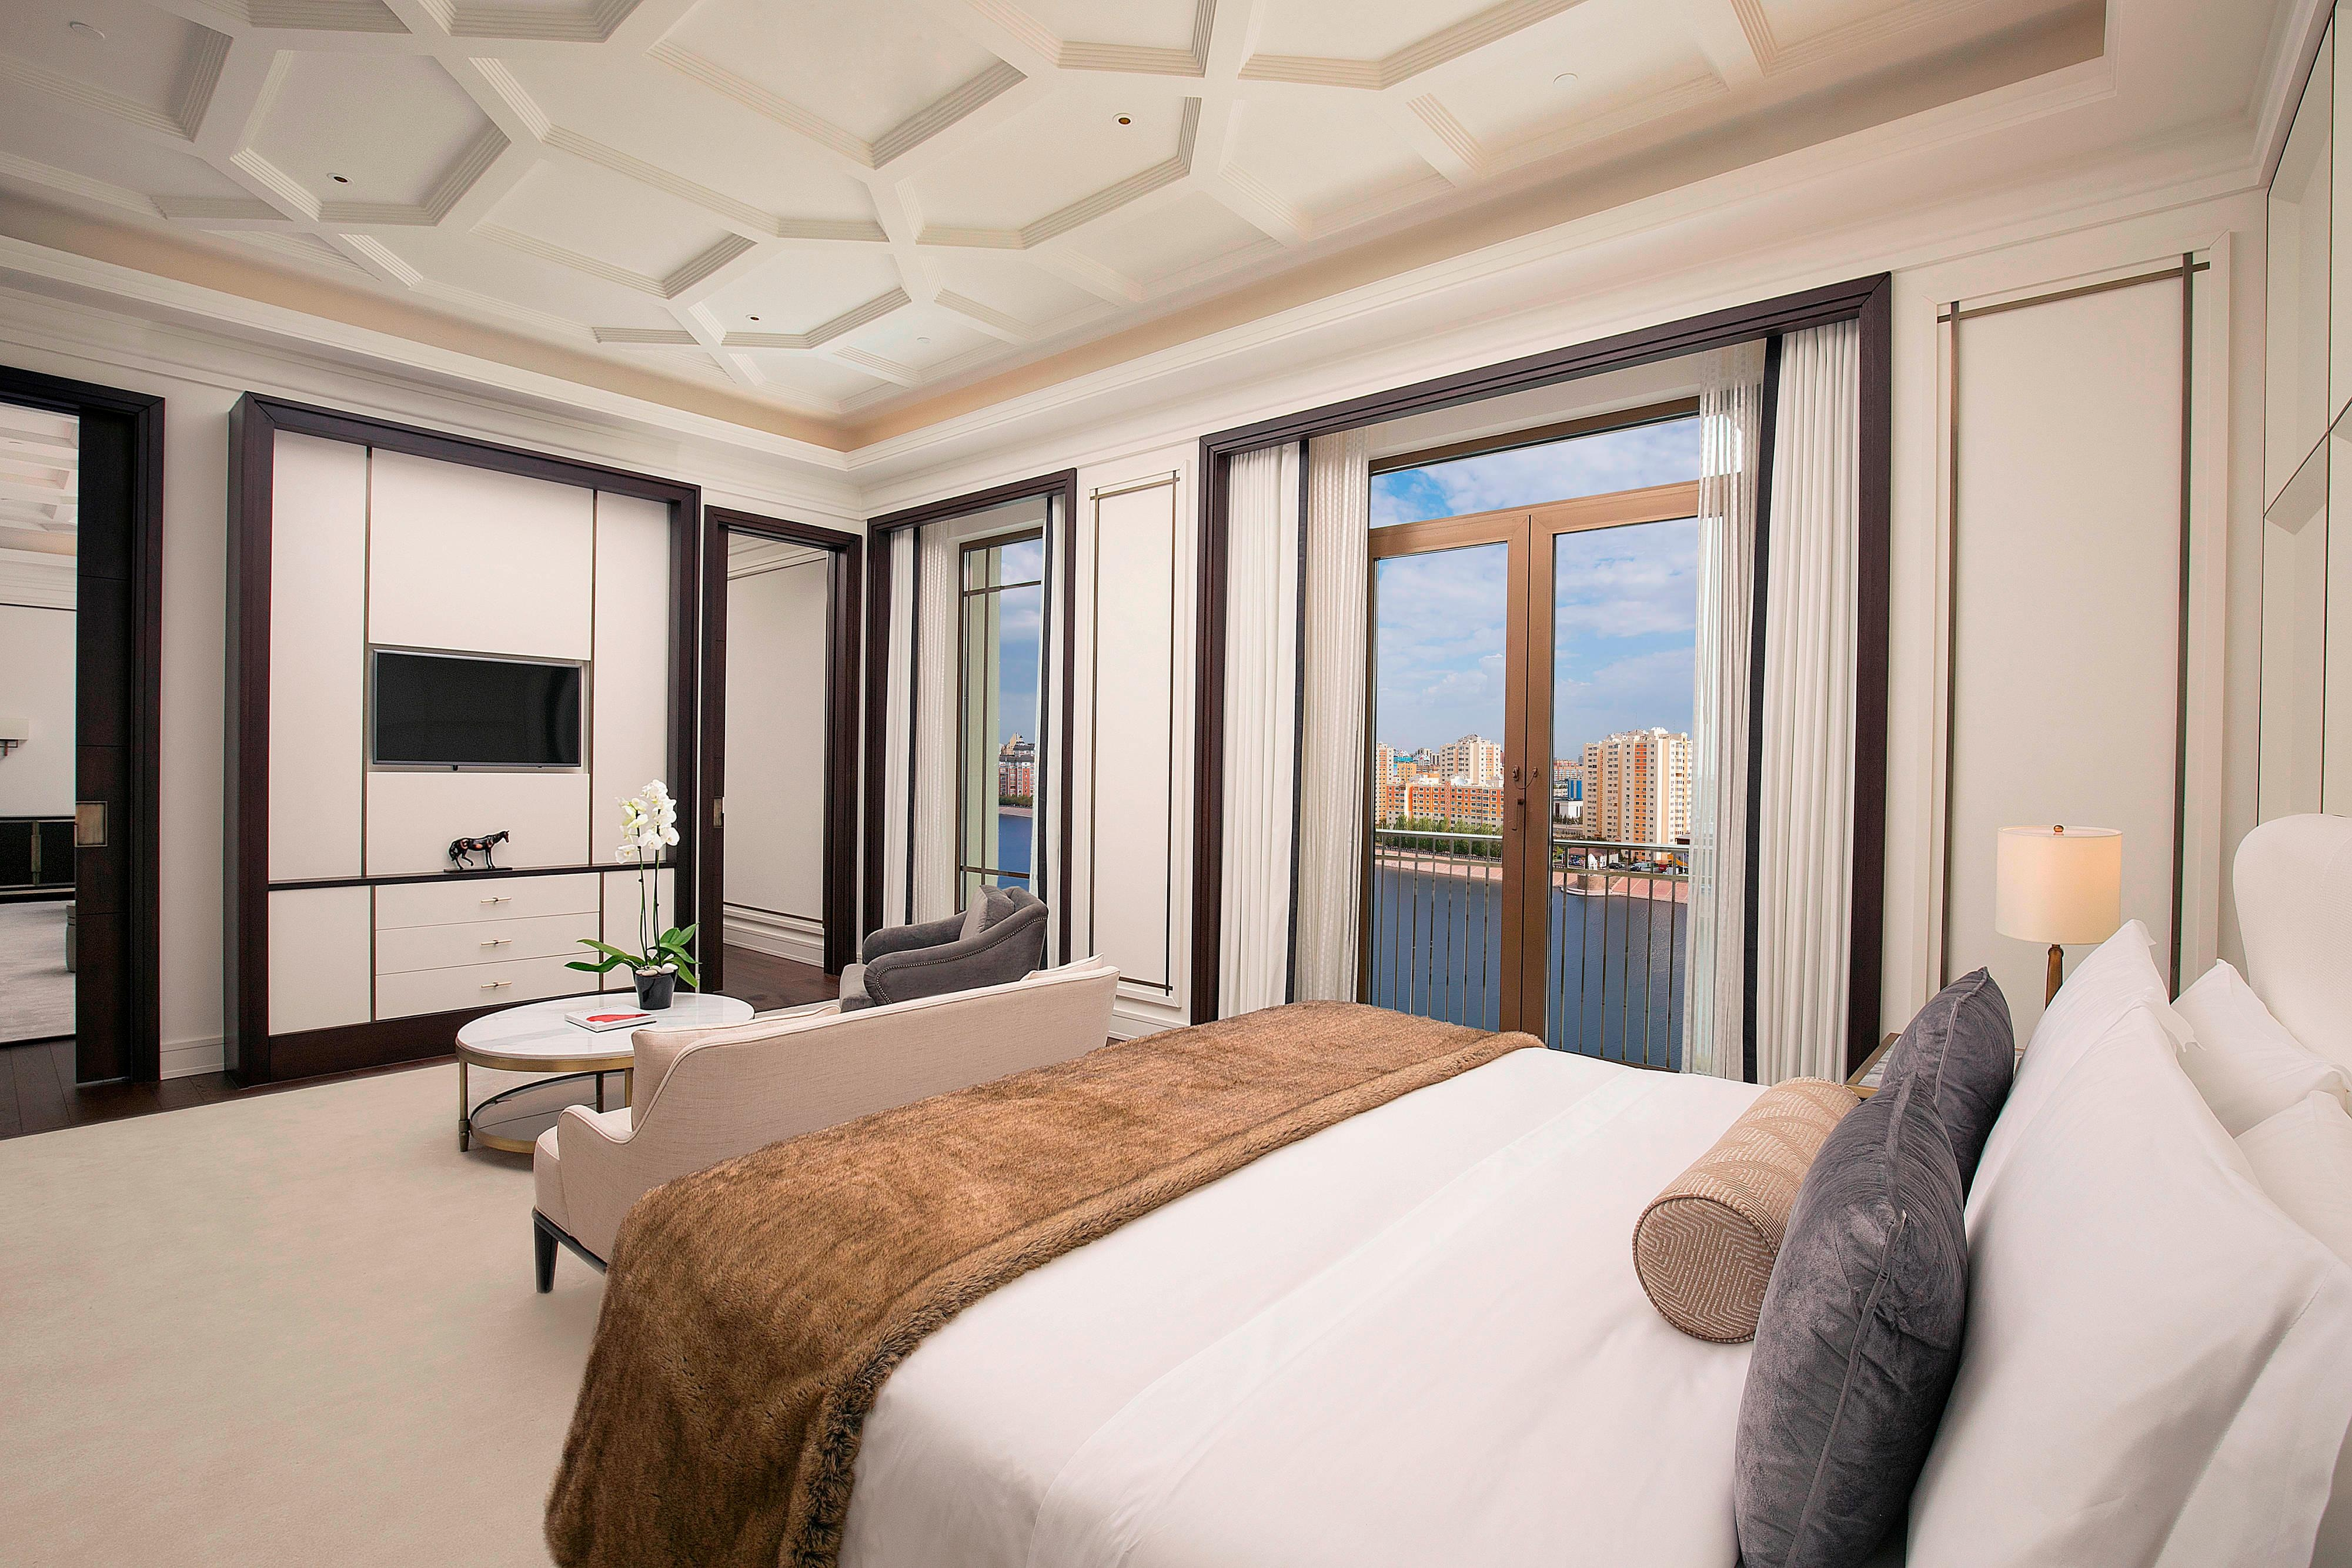 St. Regis Suite - Bedroom - View